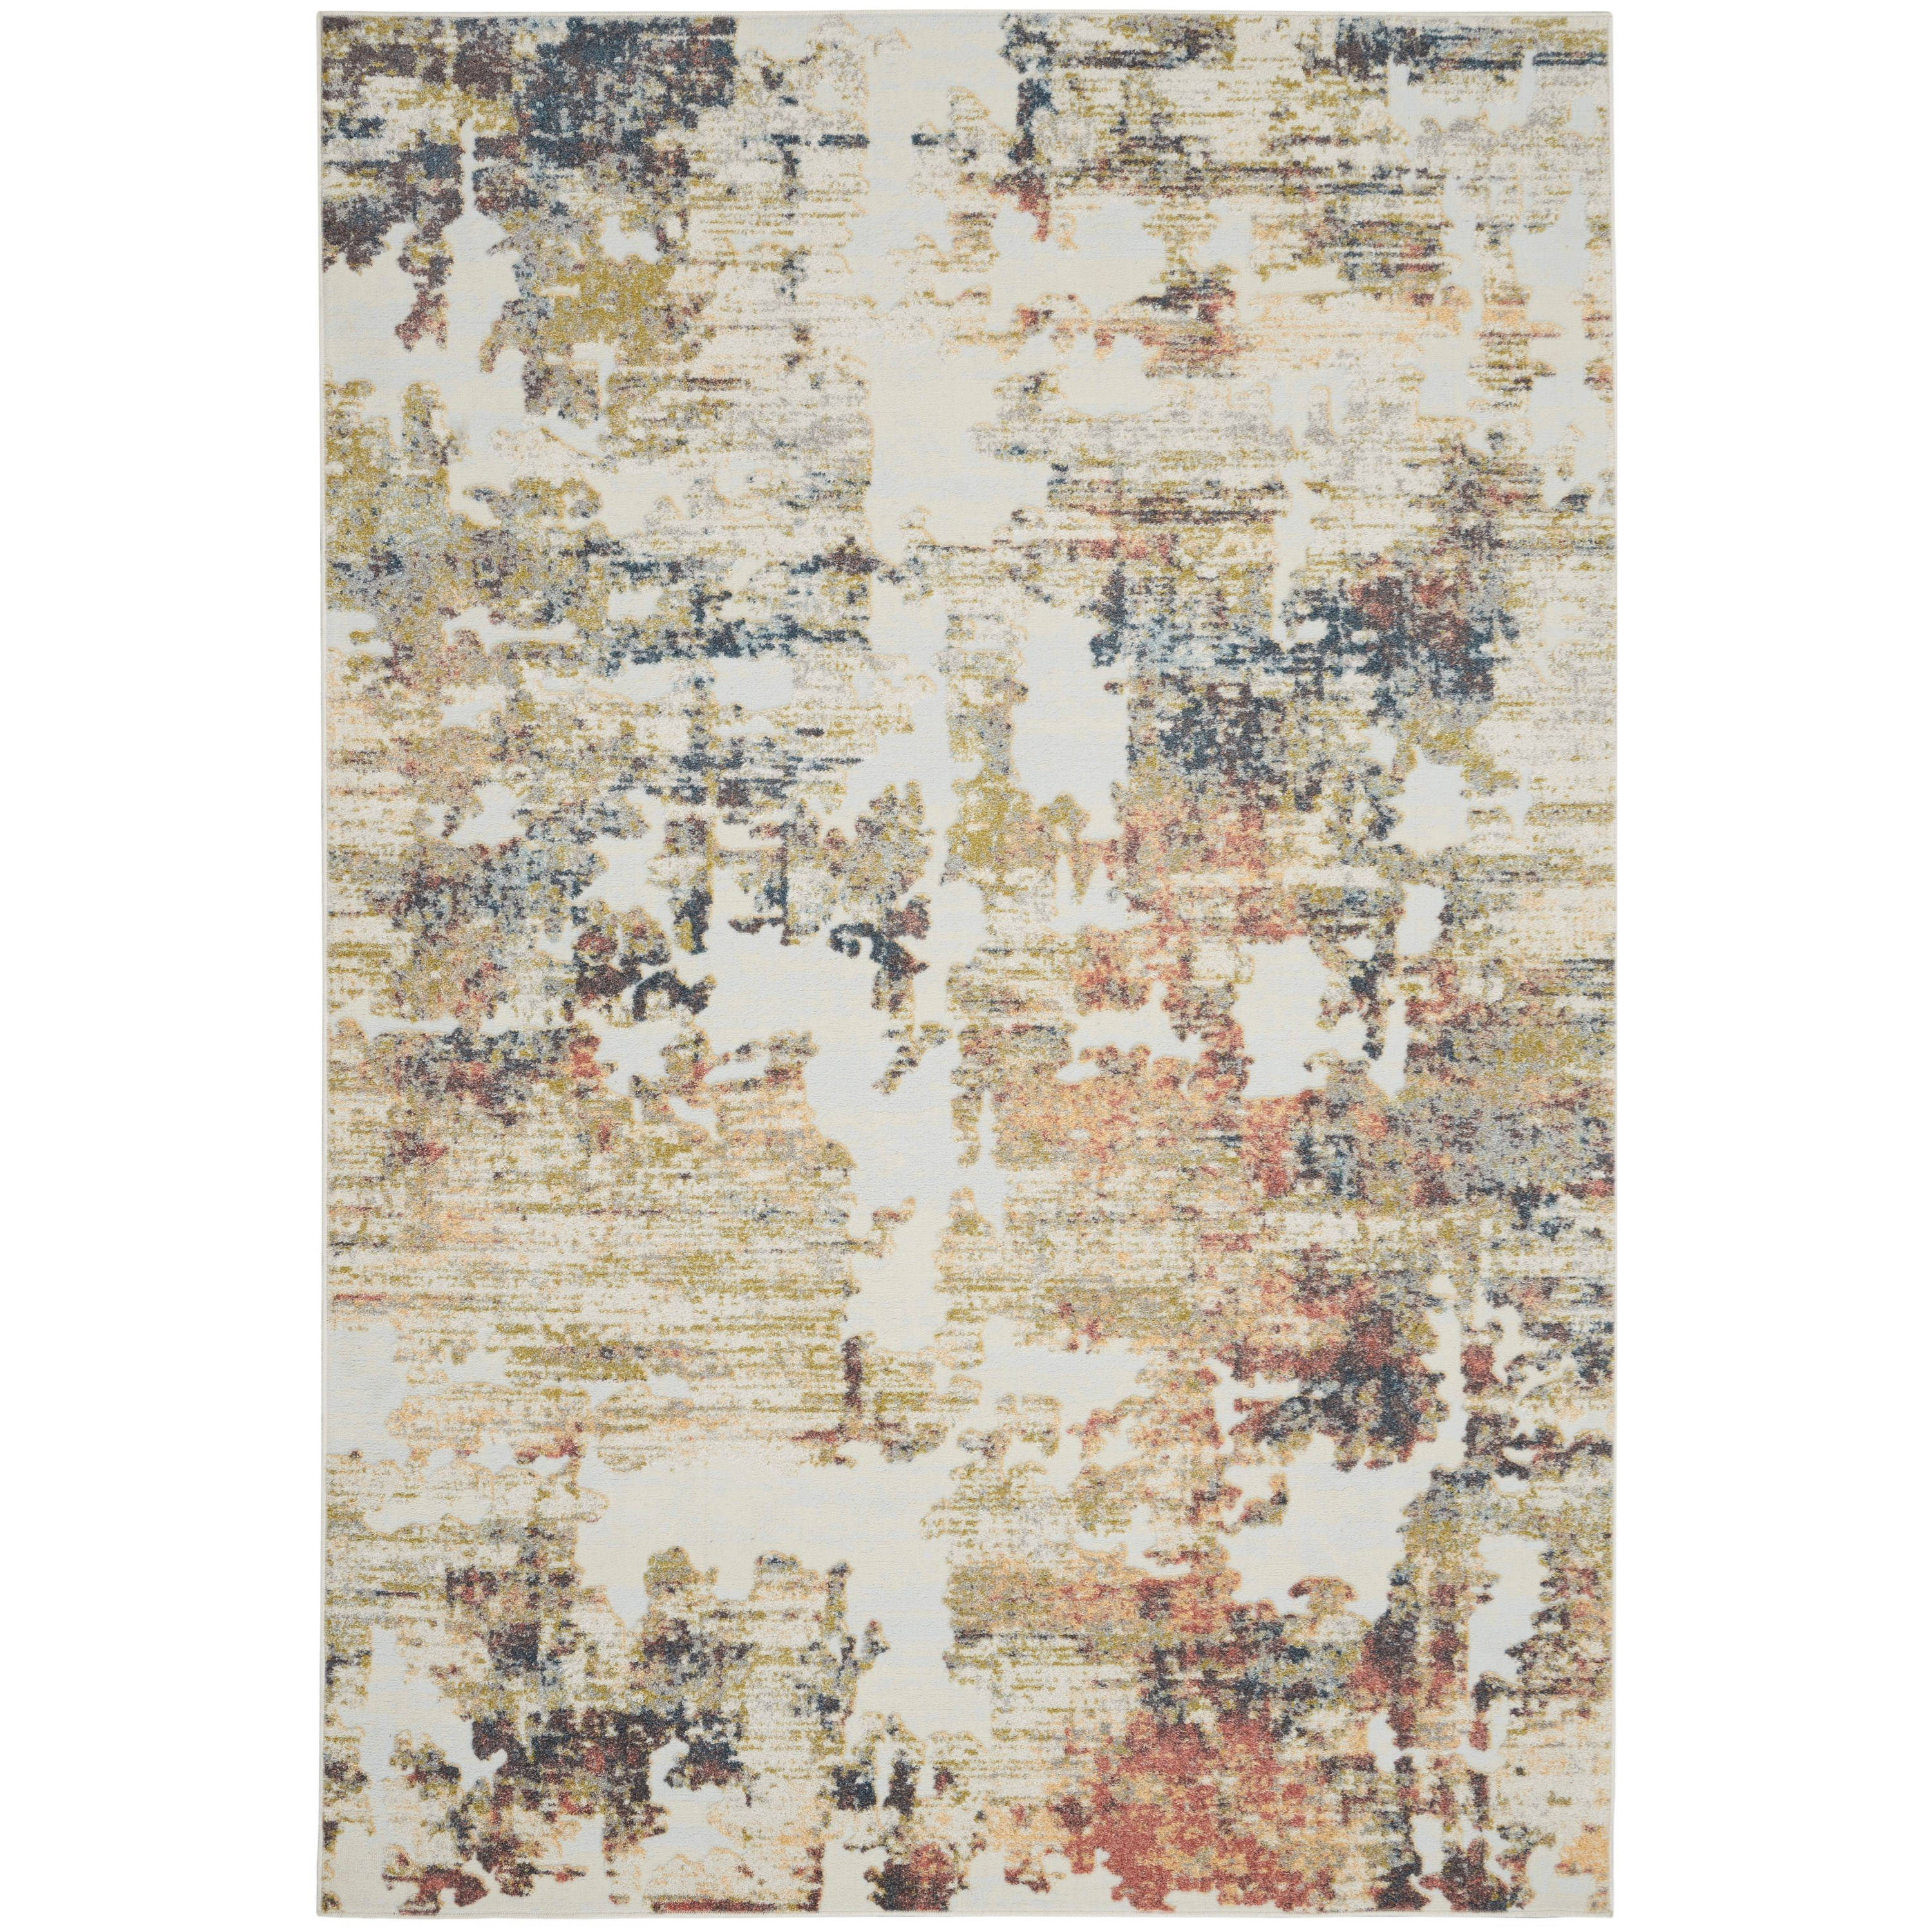 Trance 2020 8' x 10' Rug by Nourison at Story & Lee Furniture